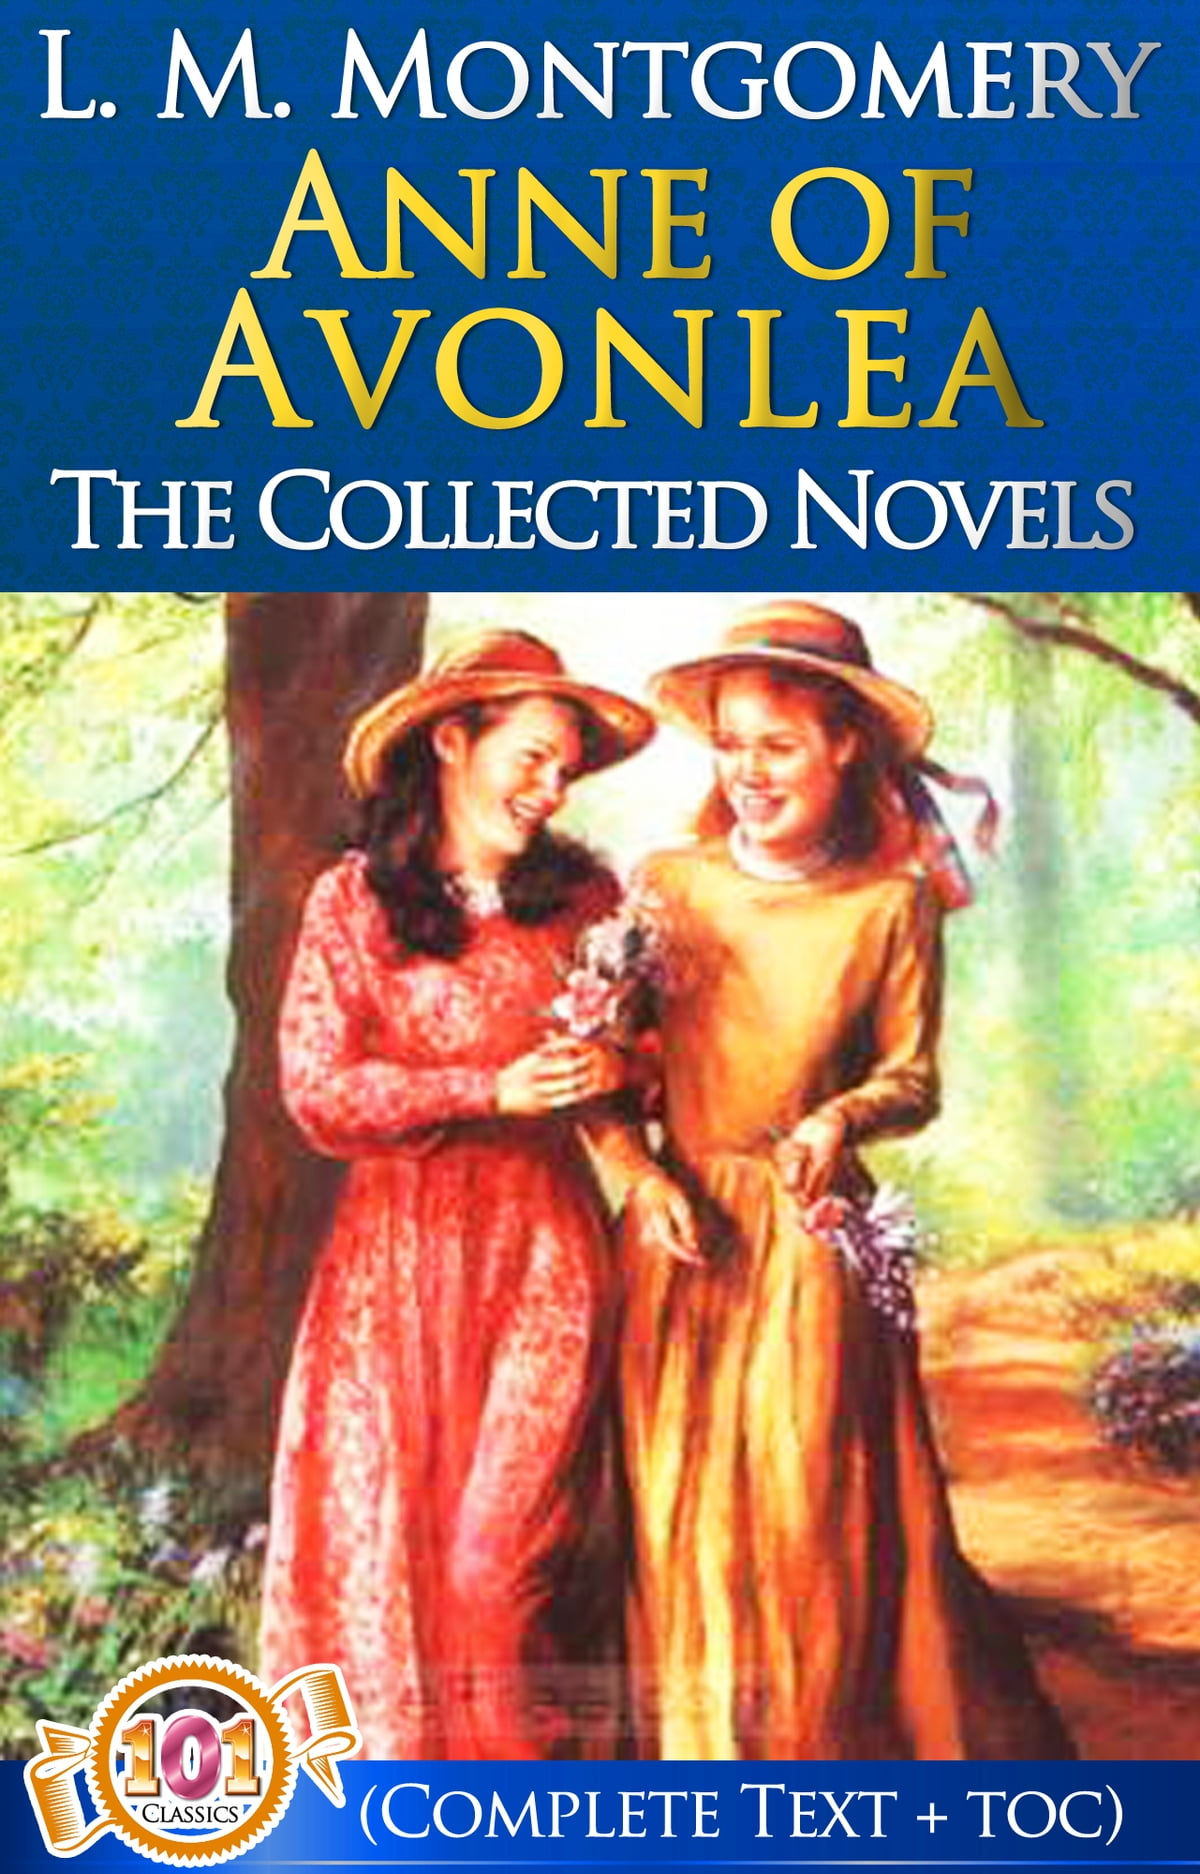 Anne of Avonlea Complete Text [with Free AudioBook Links] eBook by L. M.  Montgomery - 1230000106998   Rakuten Kobo